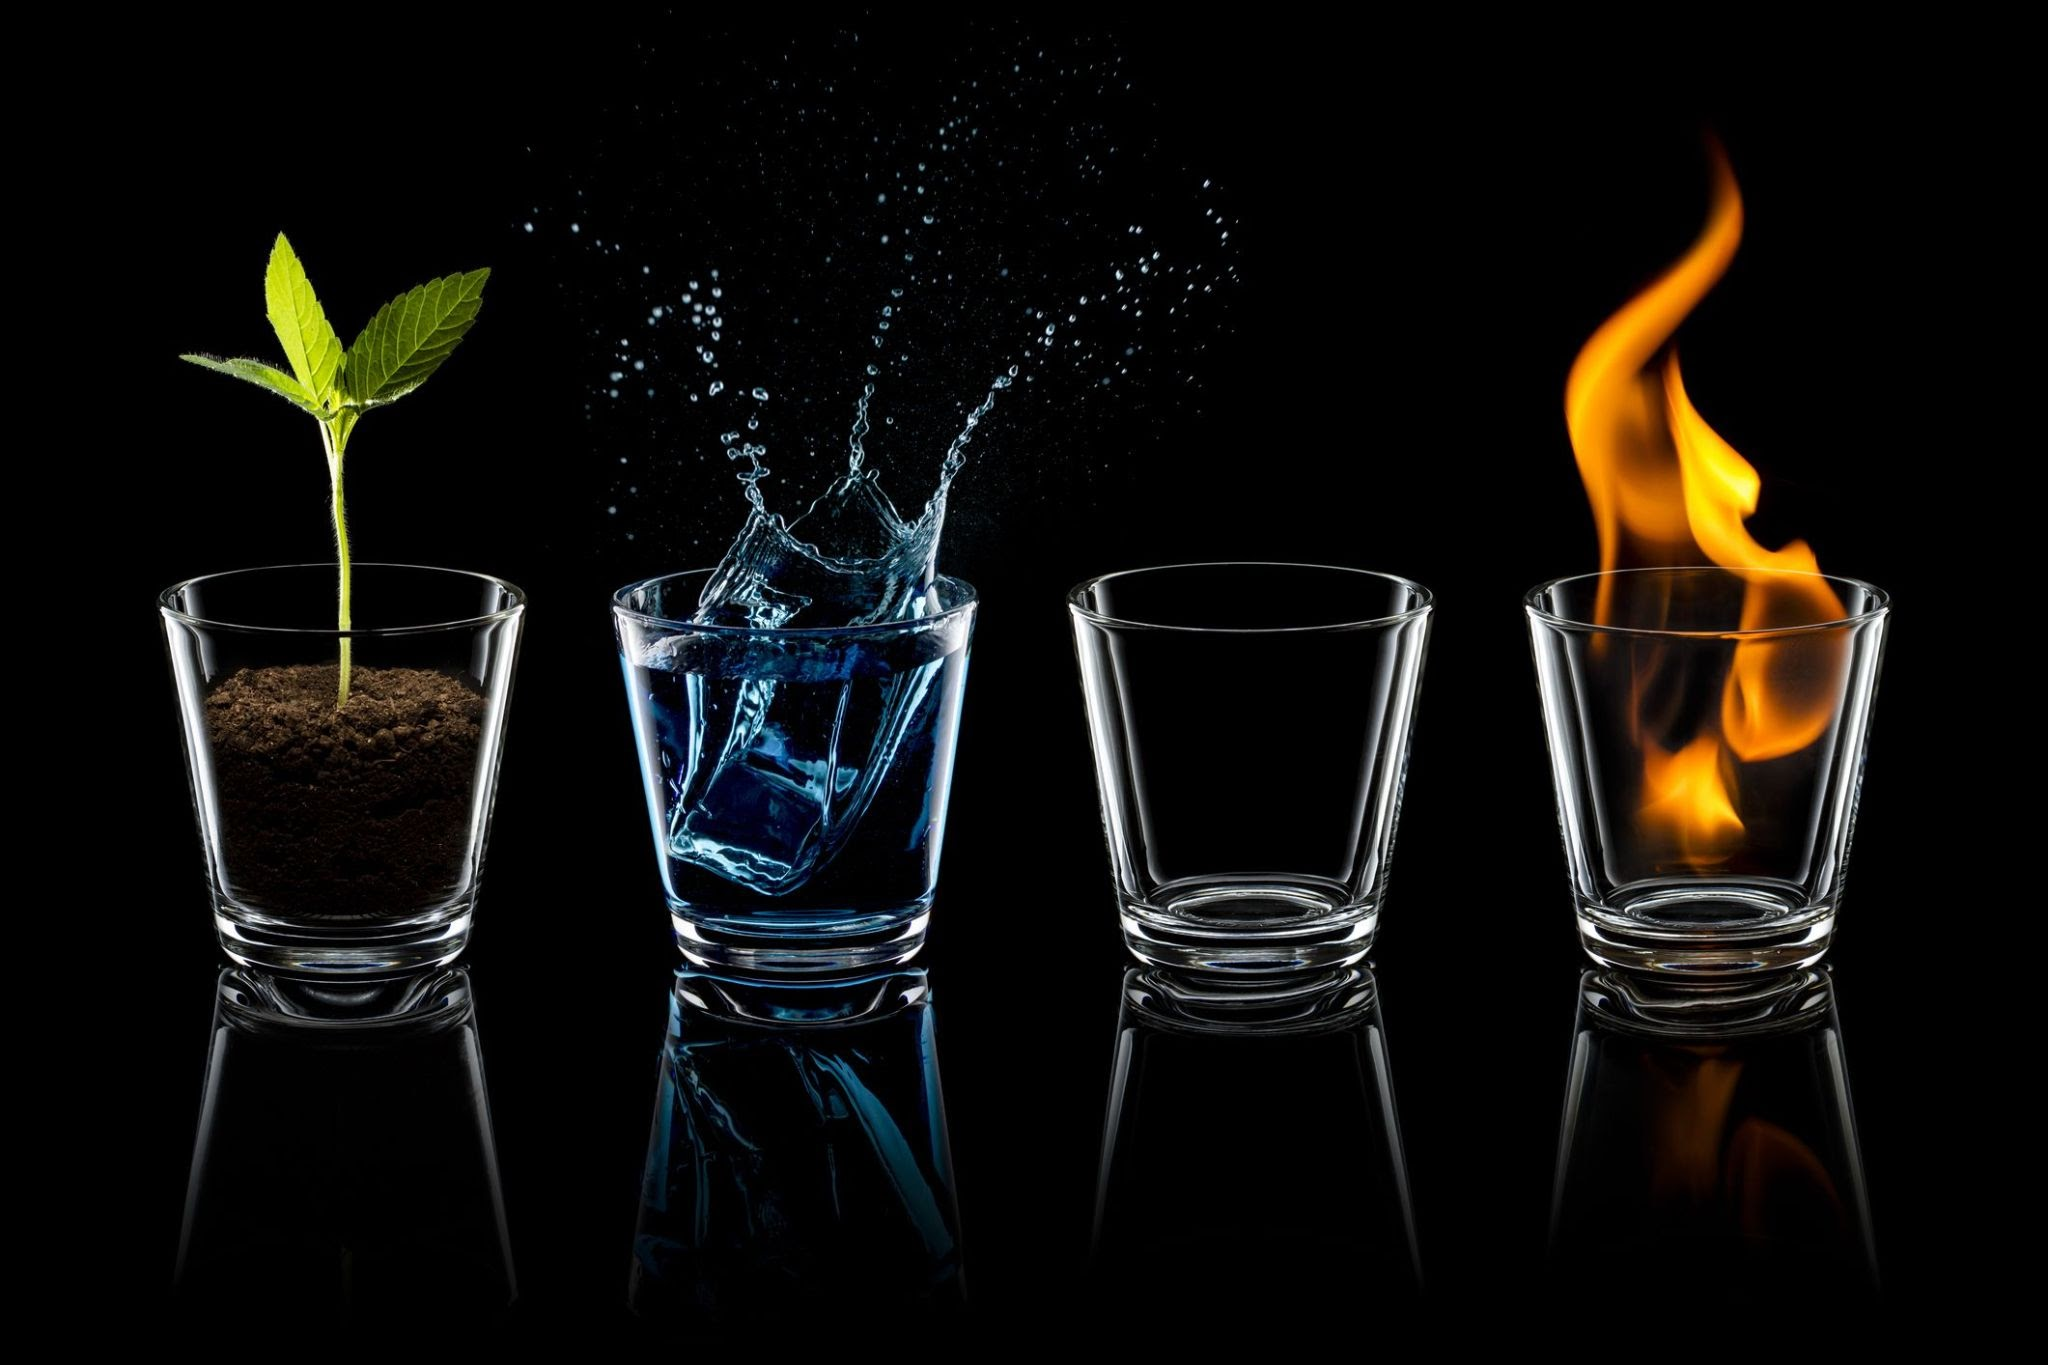 These are the four elements: air, fire, water, and earth. Together, they form the natural world, making each one dependent on each other. Each one has different and distinct traits. Image courtesy of cosmopolitan.com.